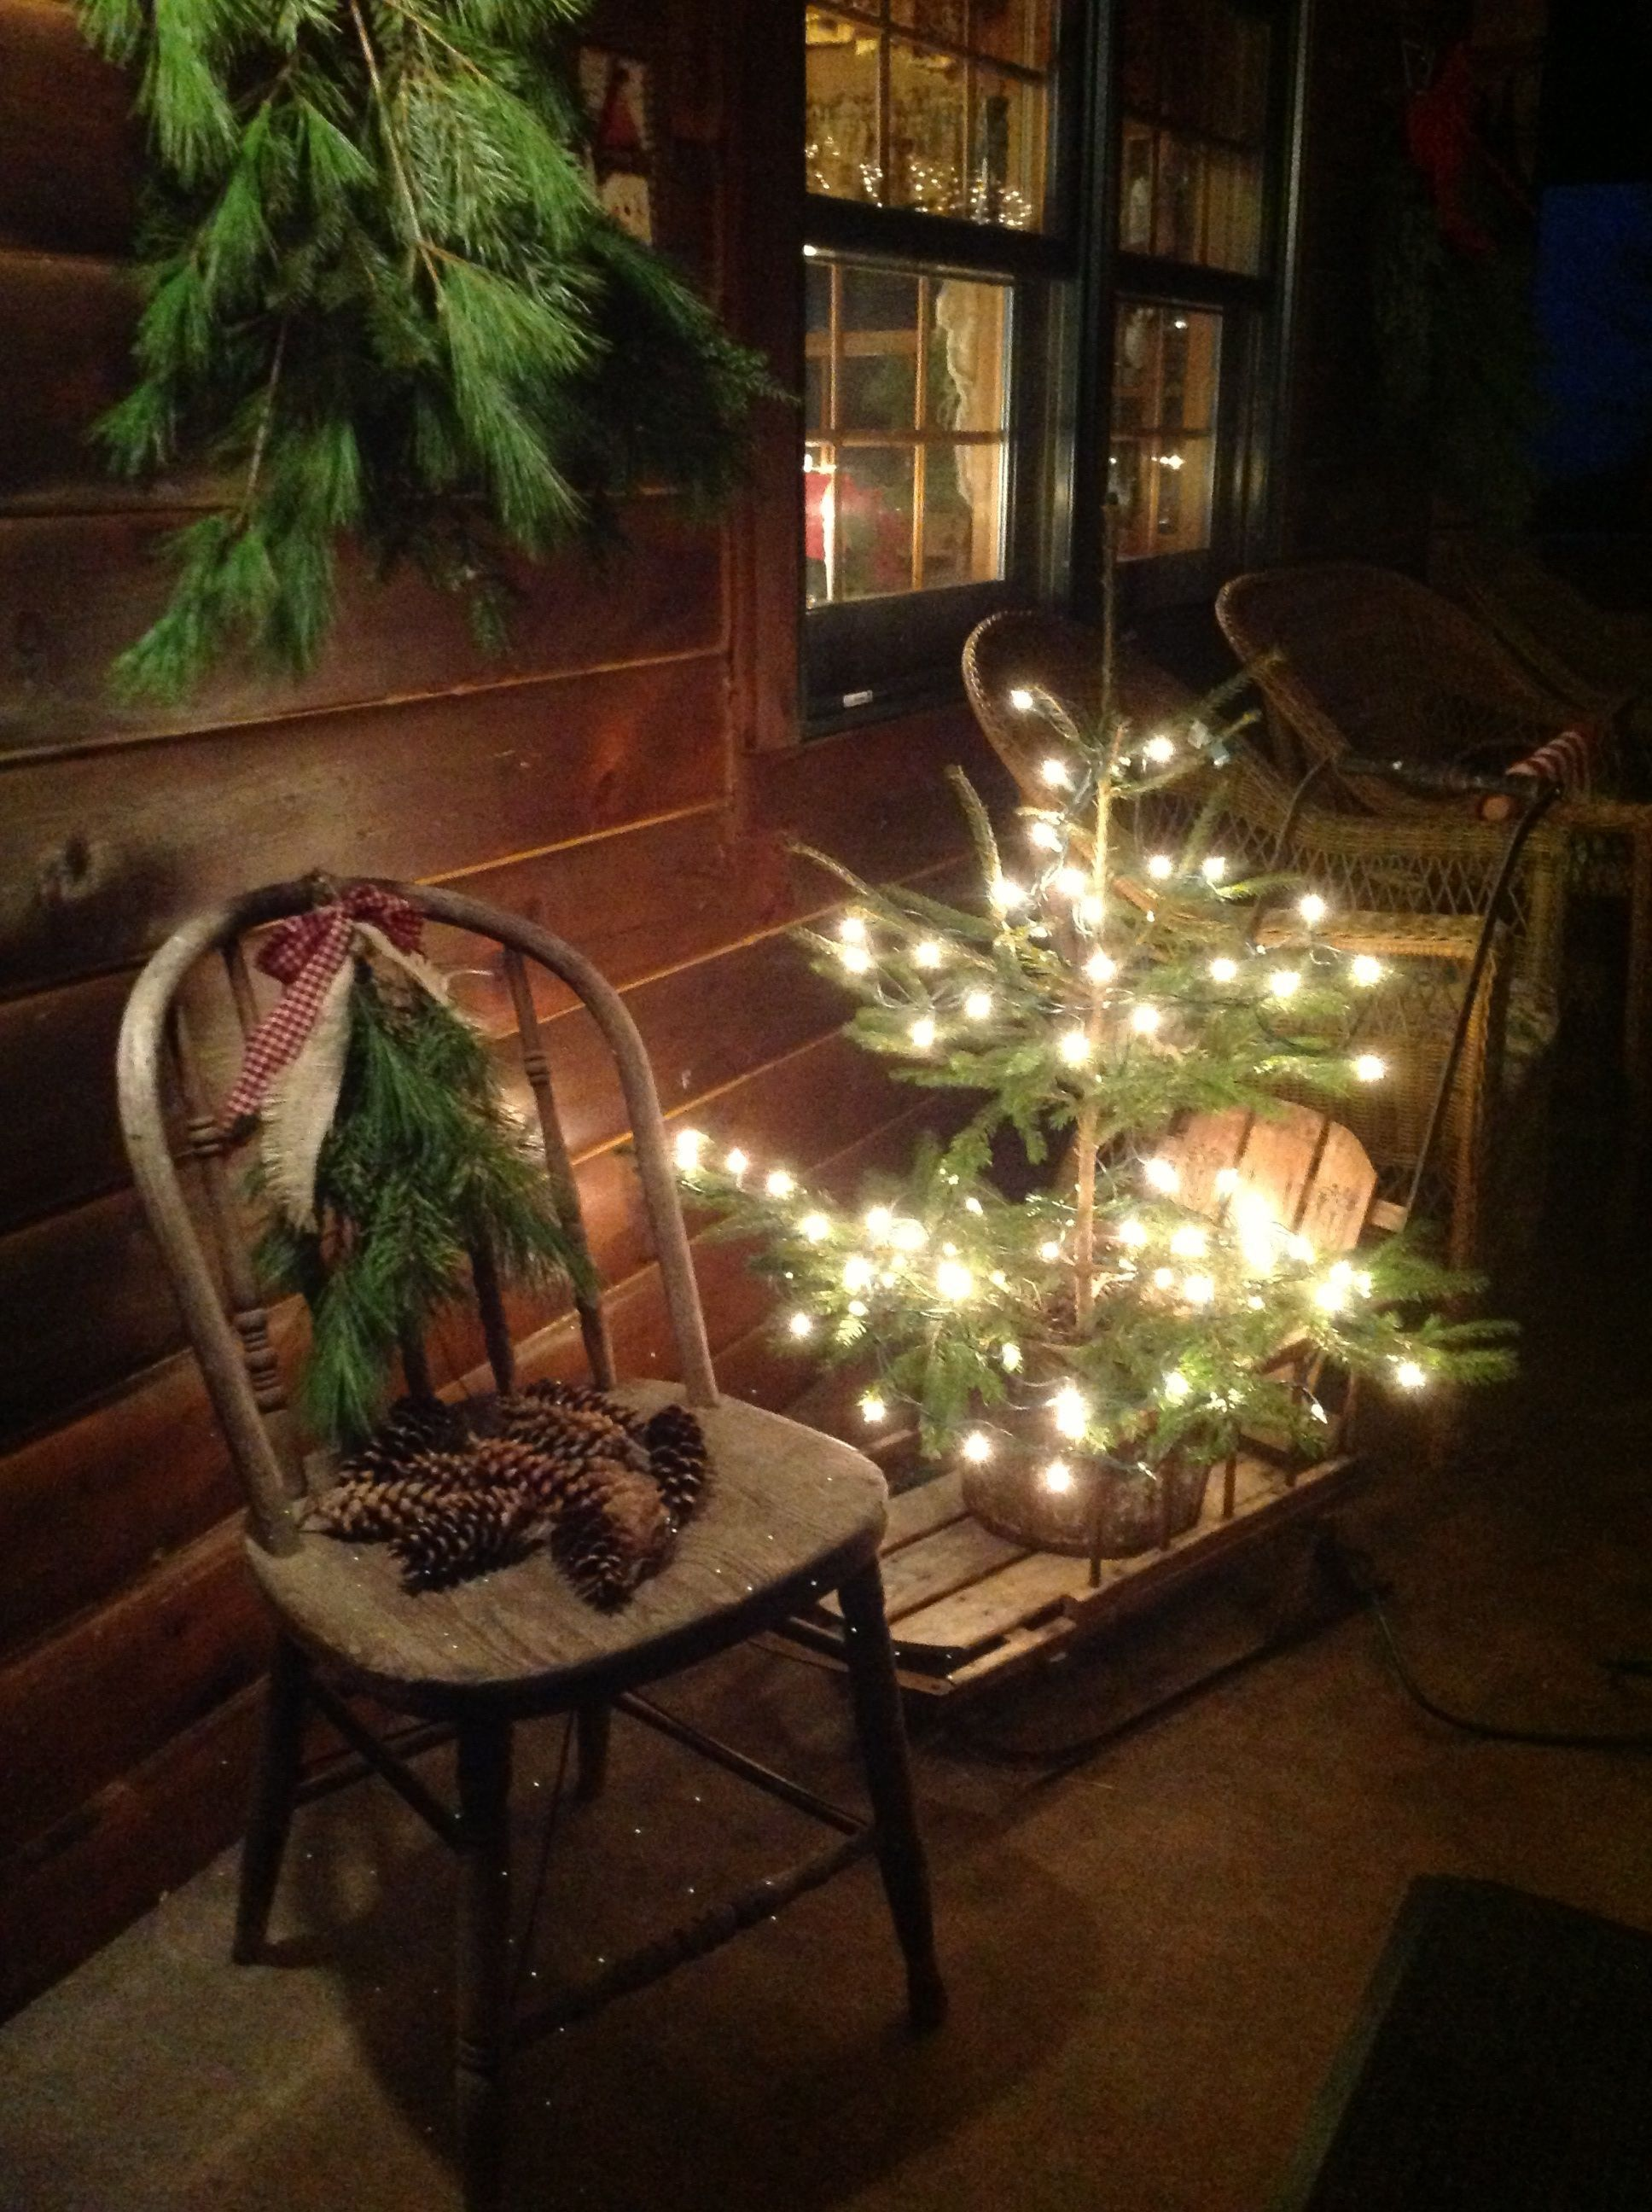 Stunning diy front porch christmas tree ideas on a budget 27